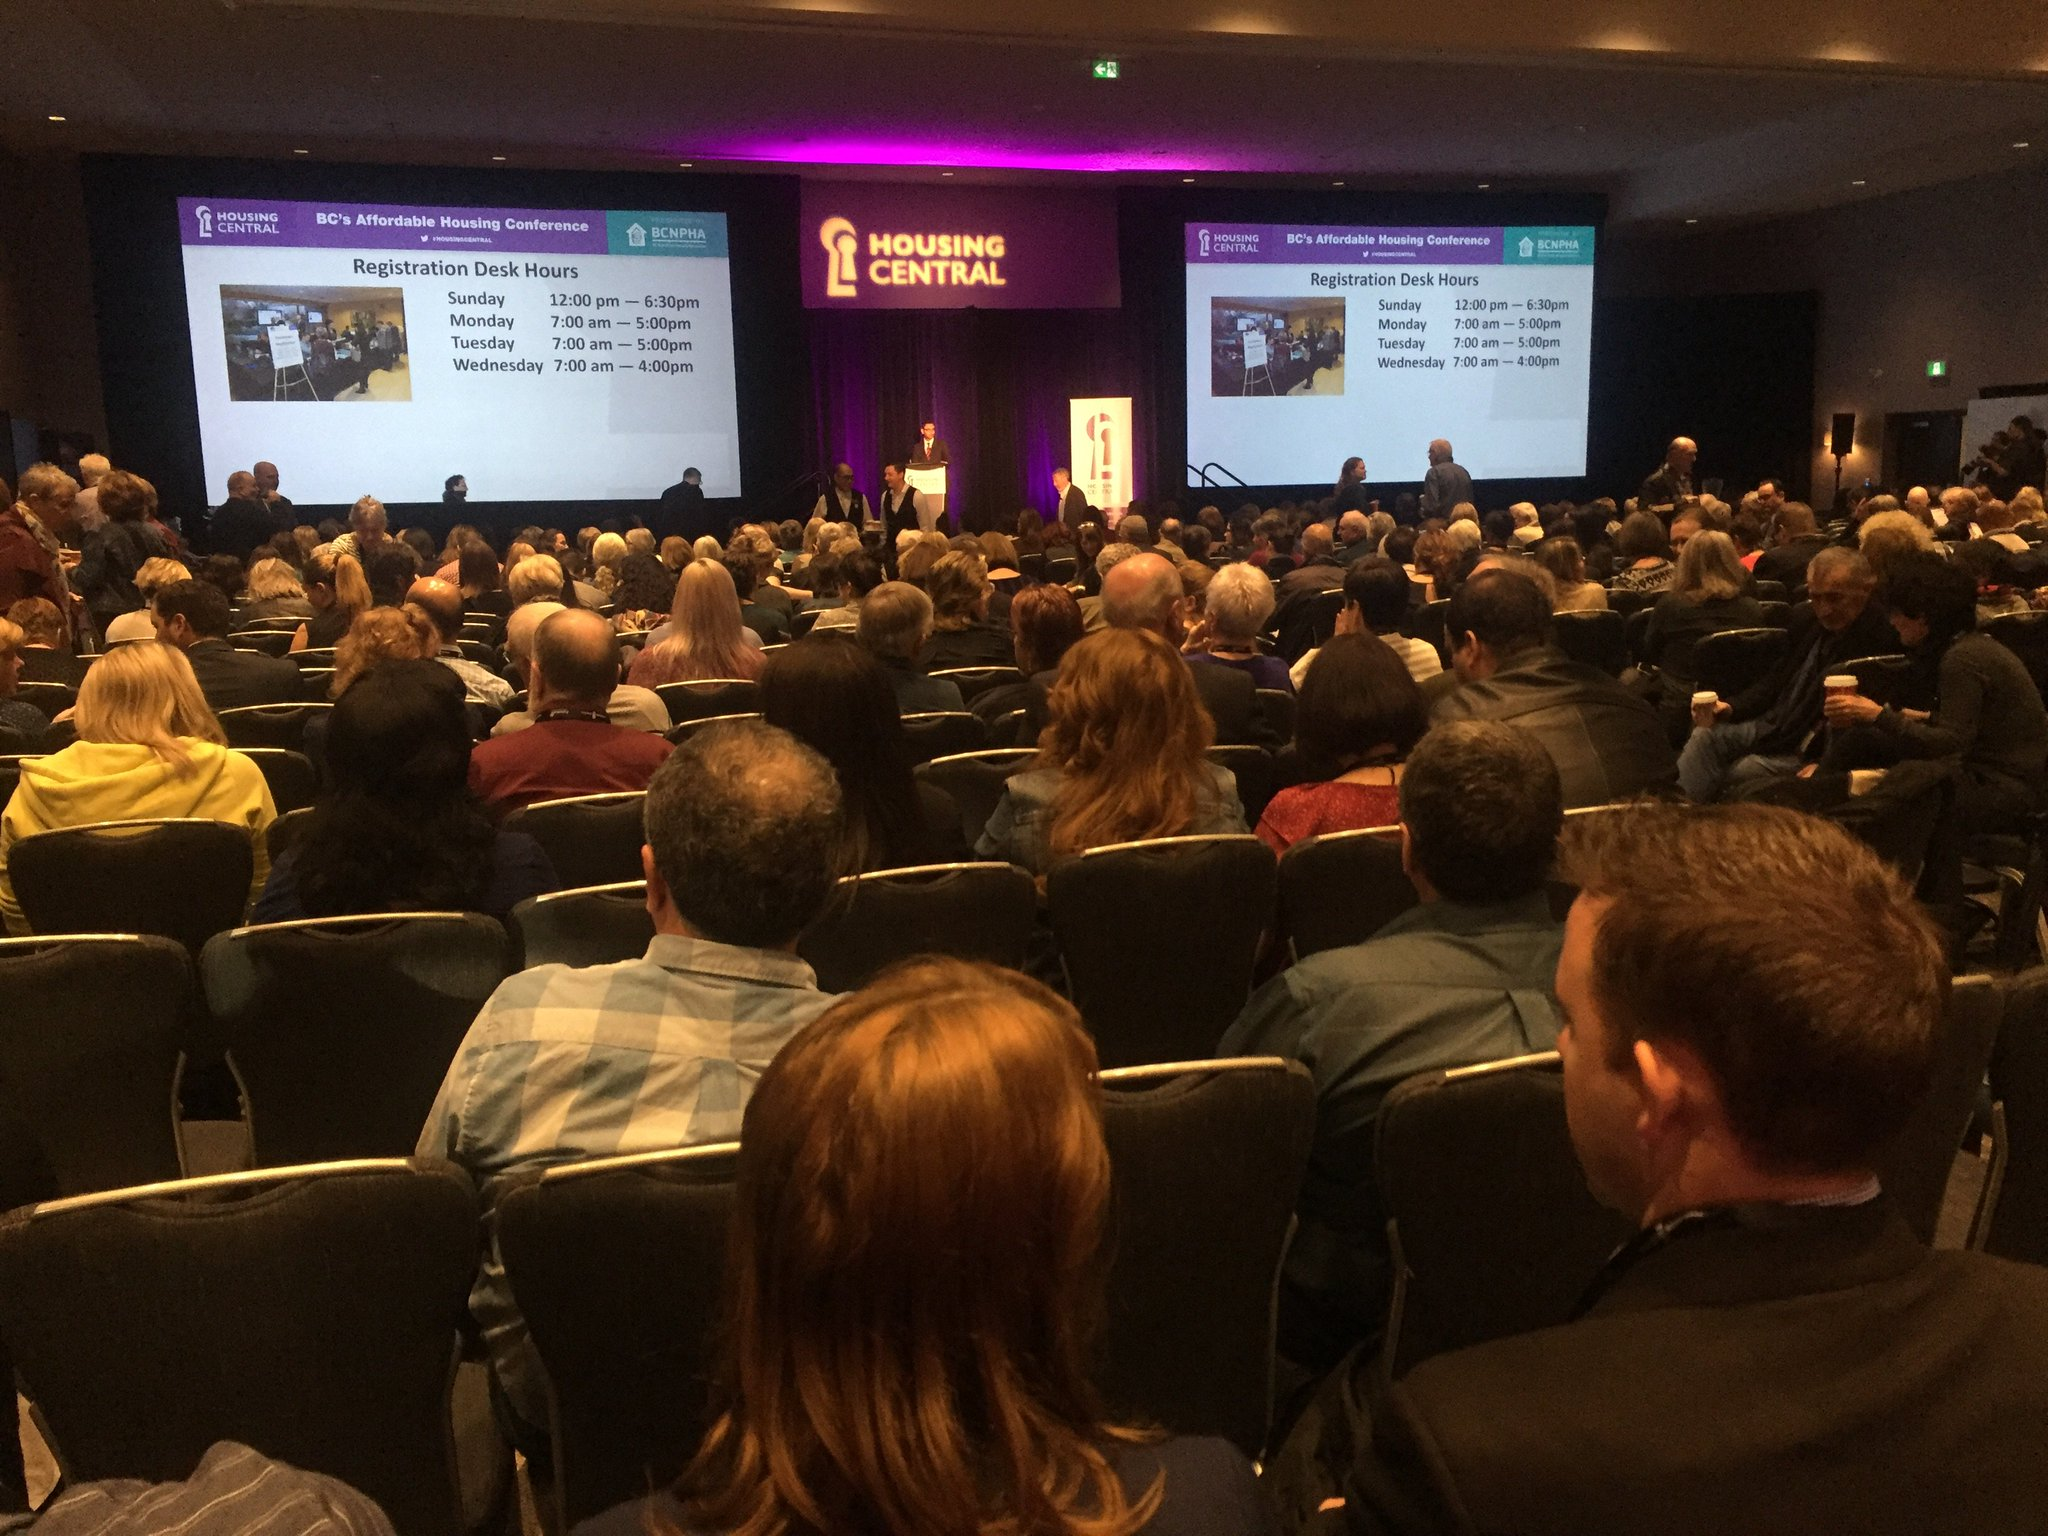 Full house at @BCNPHA #HousingCentral Plenary Keynote Speaker #DavidPeterStroh https://t.co/YxYzb8DQaF